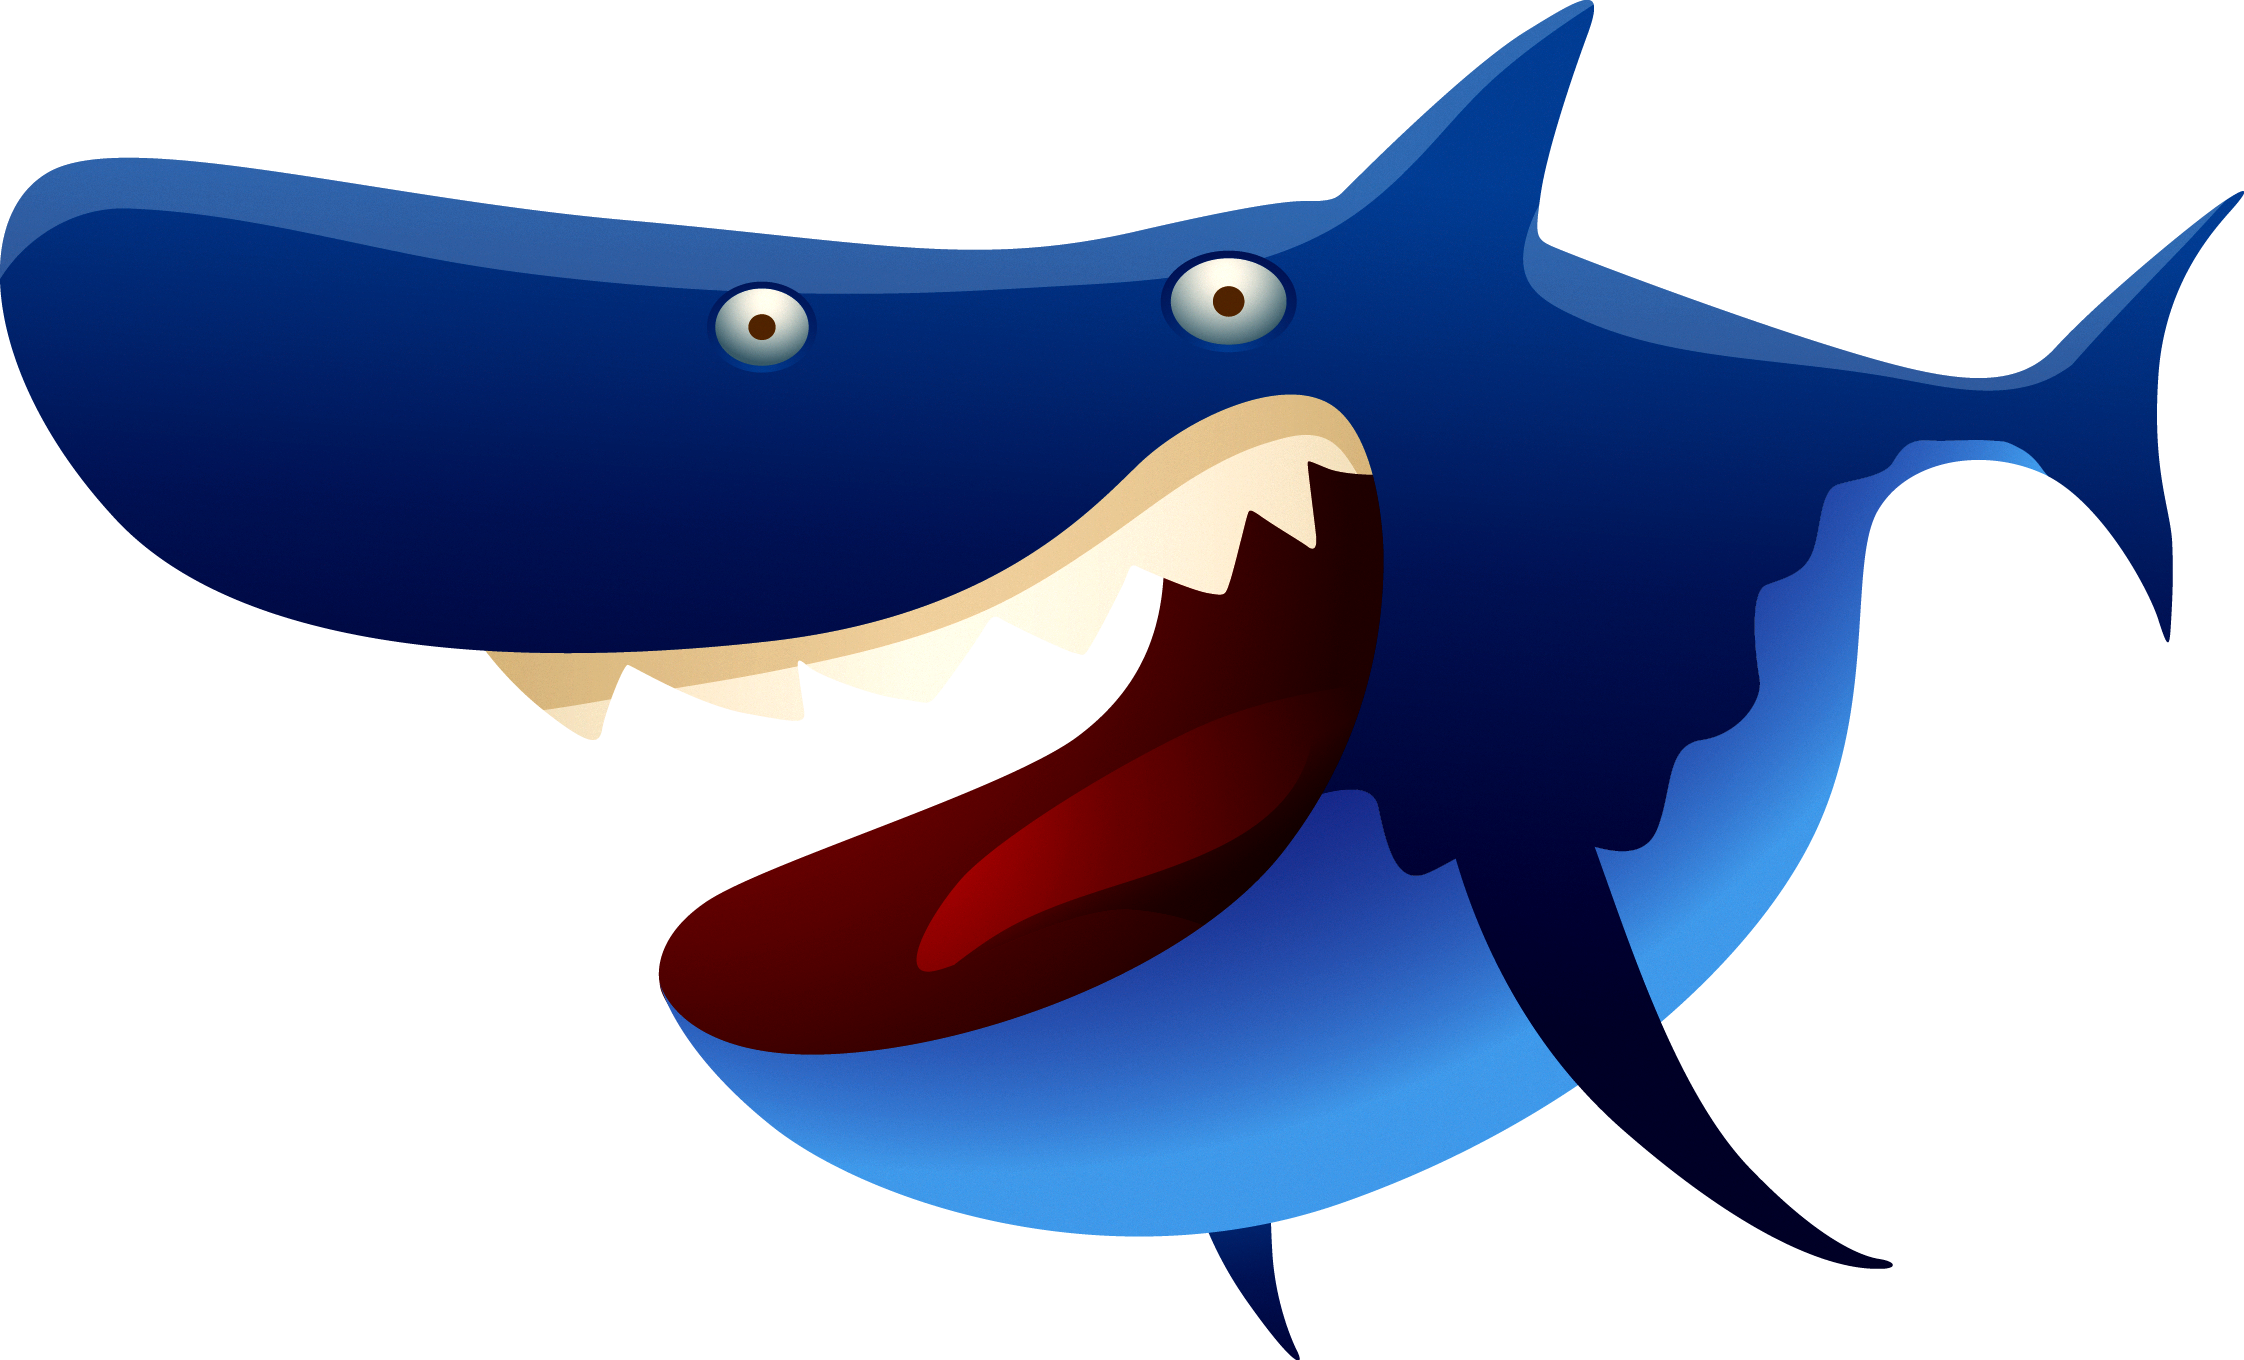 Vector sharks shark tooth. Fish transprent png free